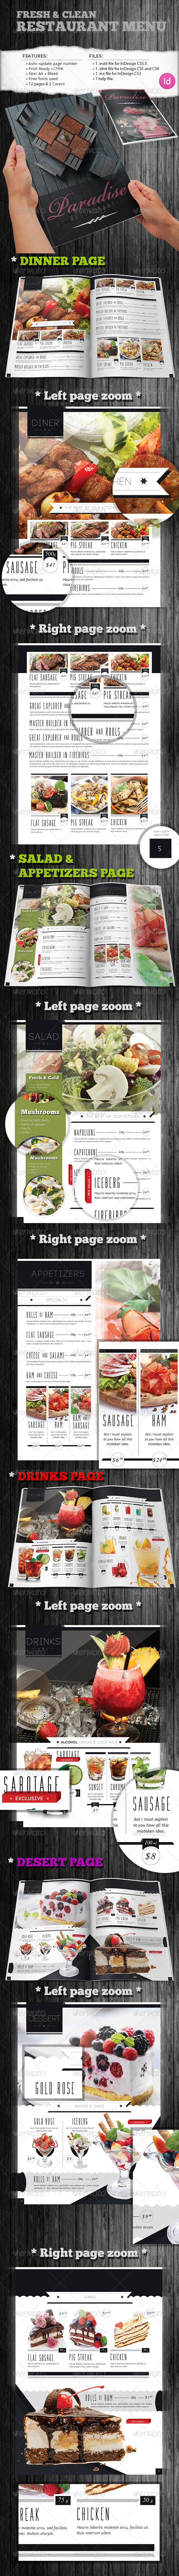 Fresh & Clean Restaurant Menu